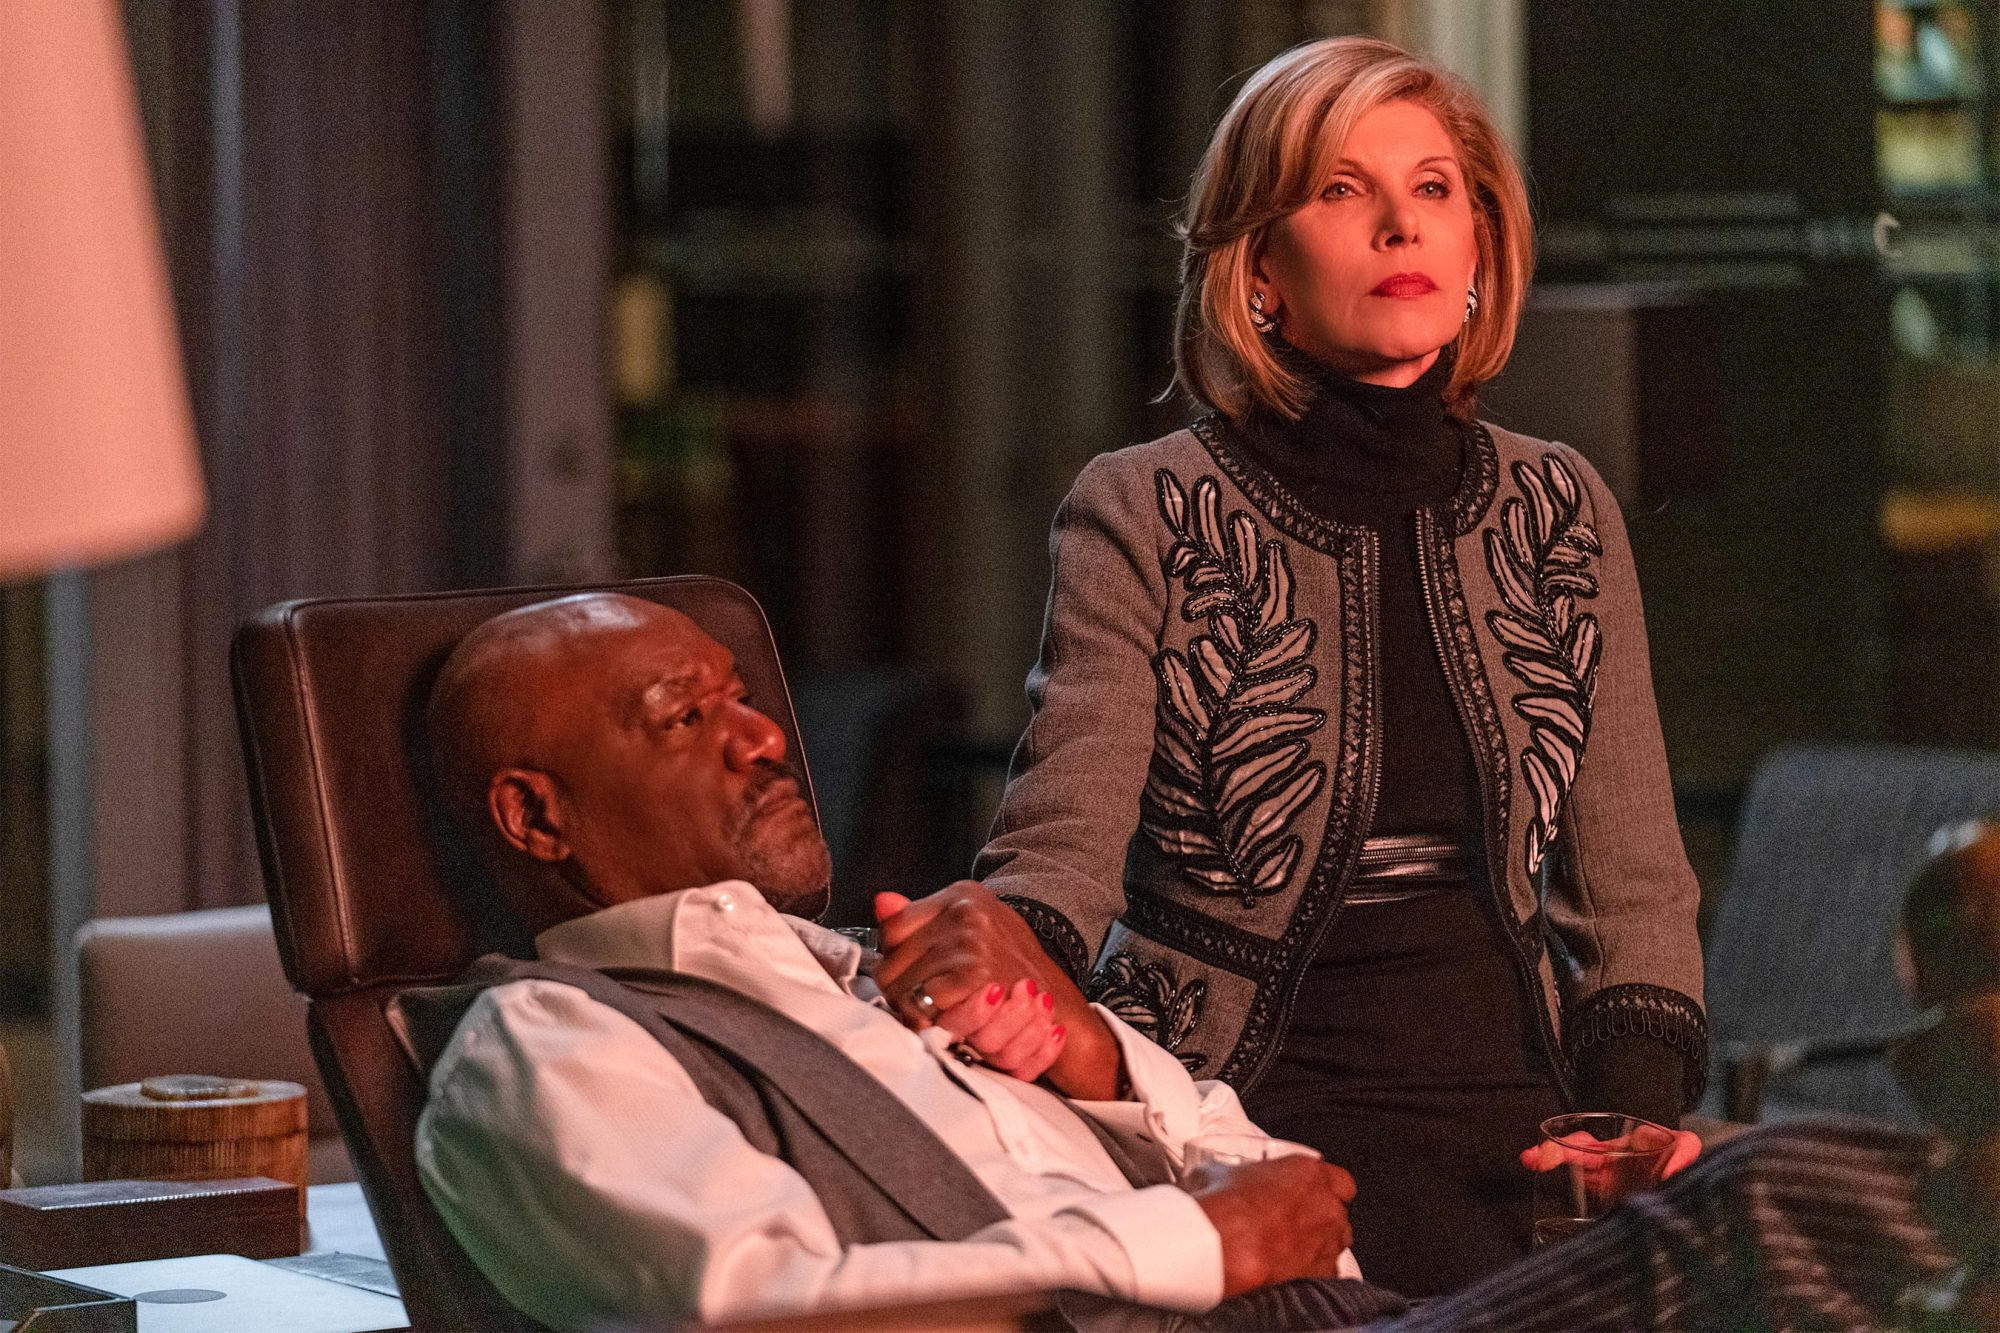 ÒThe One About the End of the WorldÓ -- Episode 310 -- Pictured(l-r): Delroy Lindo as Adrian Boseman; Christine Baranski as Diane Lockhart of the CBS All Access series THE GOOD FIGHT. Photo Cr: Patrick Harbron/CBS ©2019 CBS Interactive, Inc. All Rights Reserved.